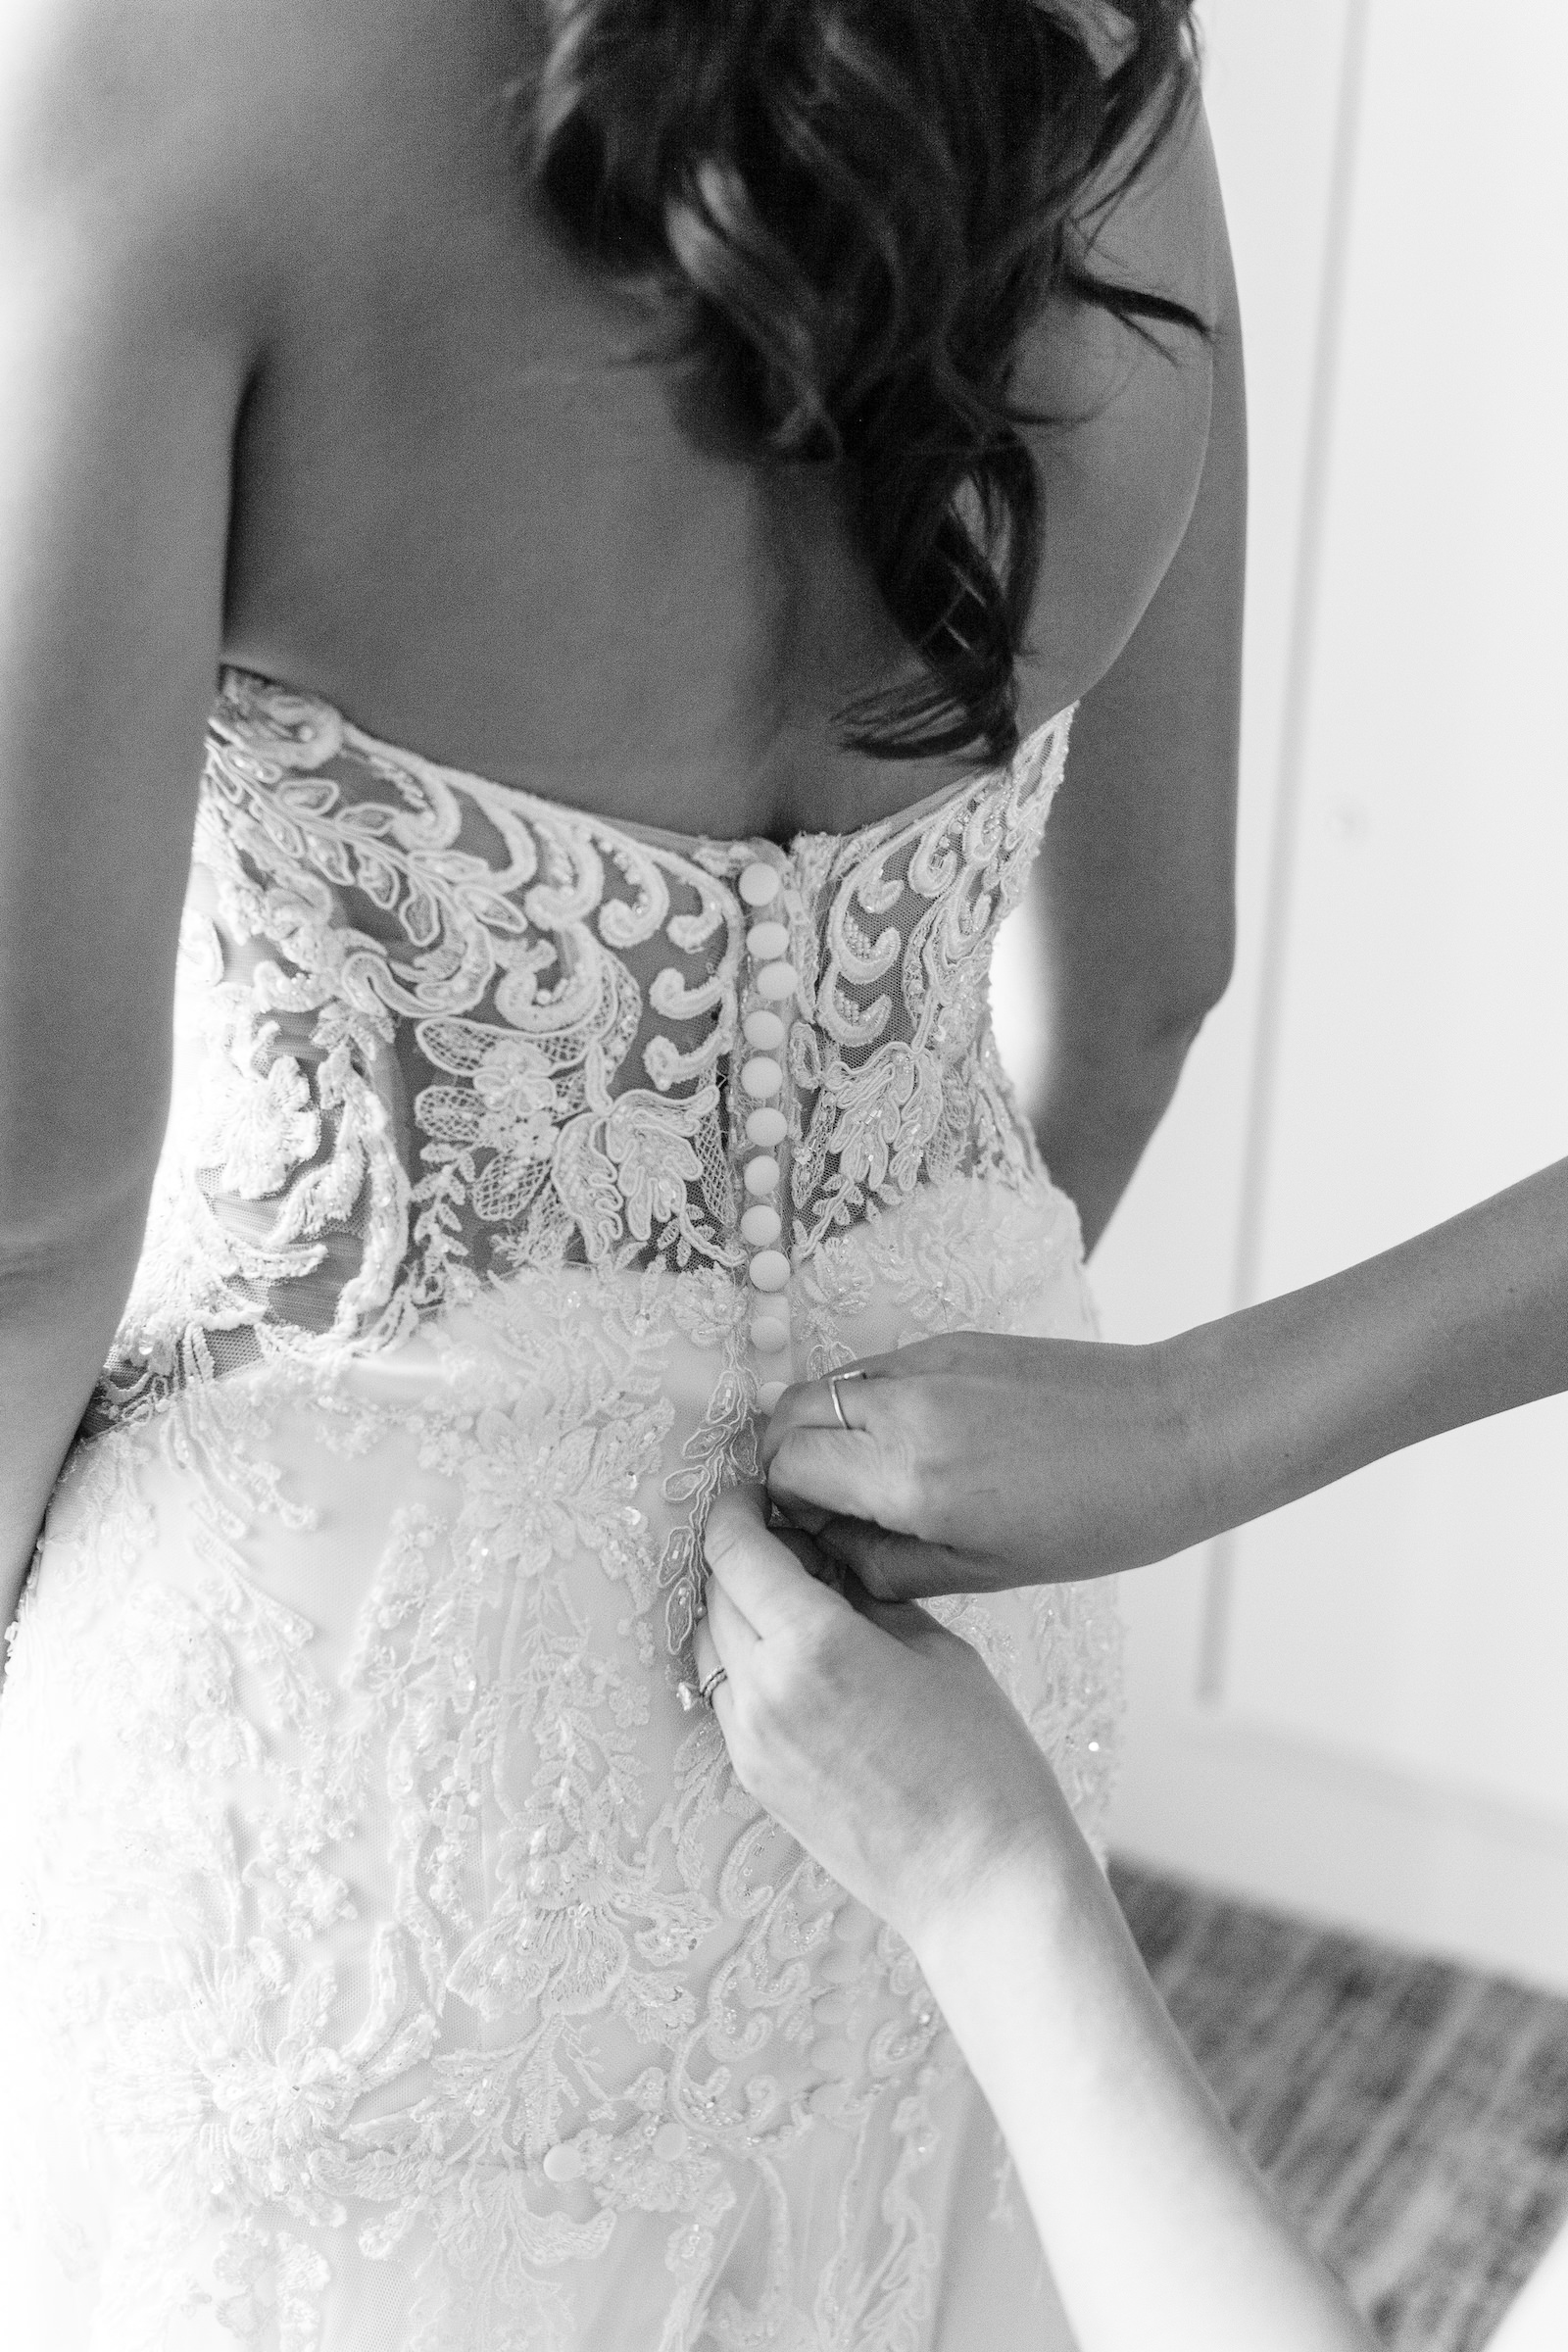 Black and white wedding Photography | Bride Getting Dressed with Sheer Illusion Lace Back Wedding Dress and Buttons | Dewitt for Love Photography